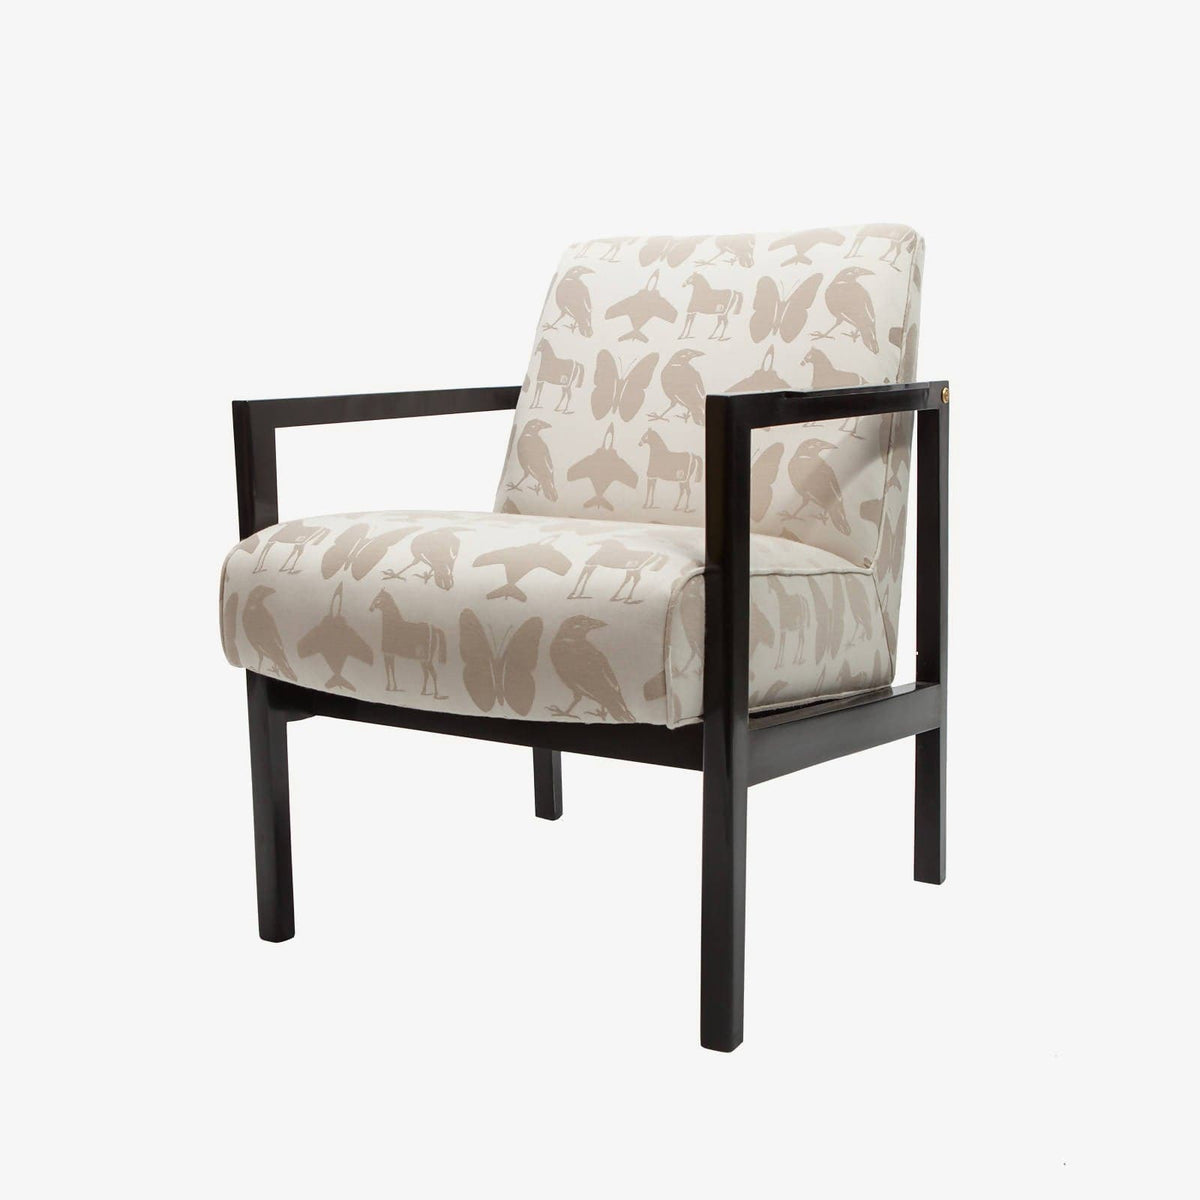 re: 264 floor model lounge chairs with black buff lacquered frame and brass accents-Price is for the pair.